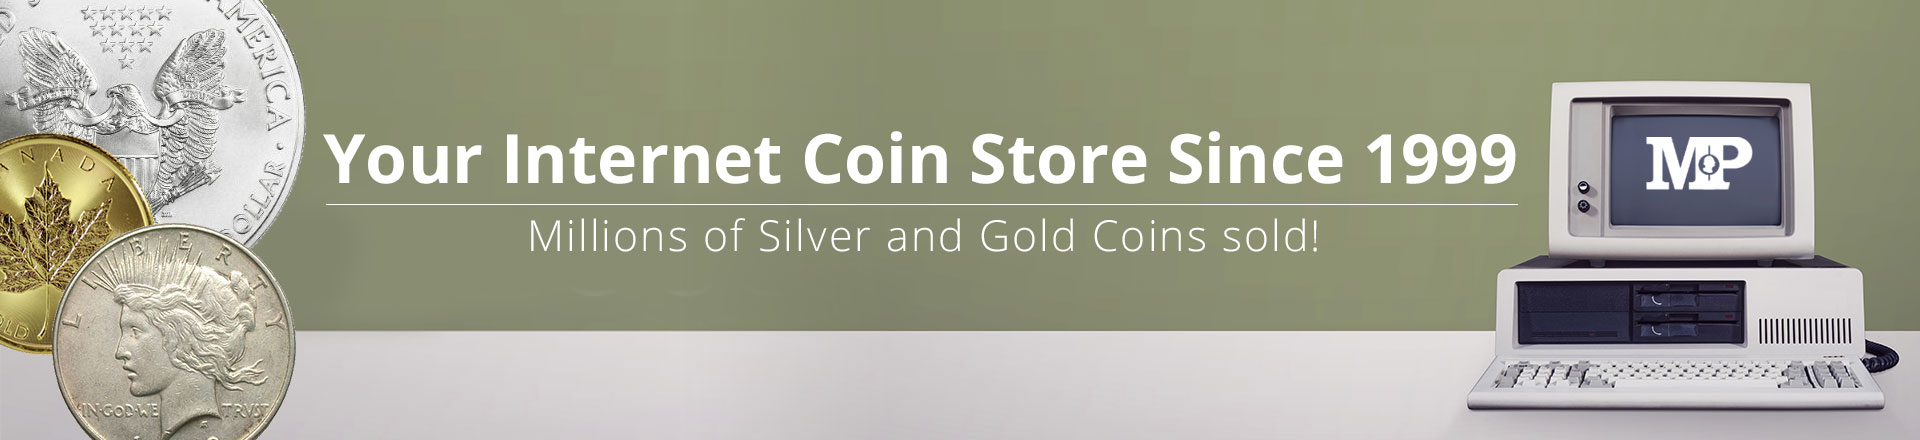 MintProducts Your Internet Coin Store since 1999